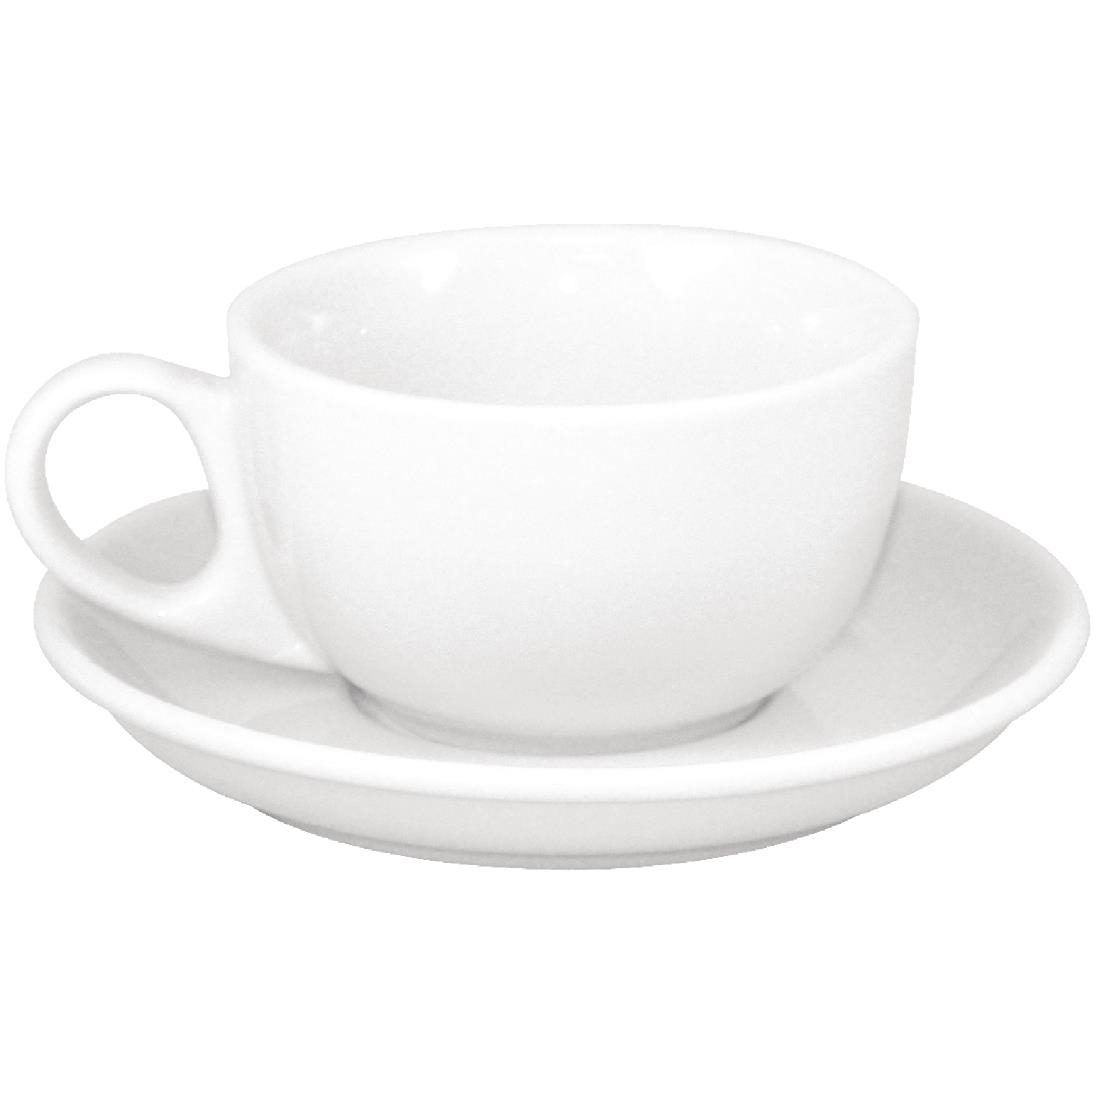 special offer athena cappuccino cups and saucers  s  buy  -  sale offer  athena cappuccino cups cc  saucers cc (box ) combo